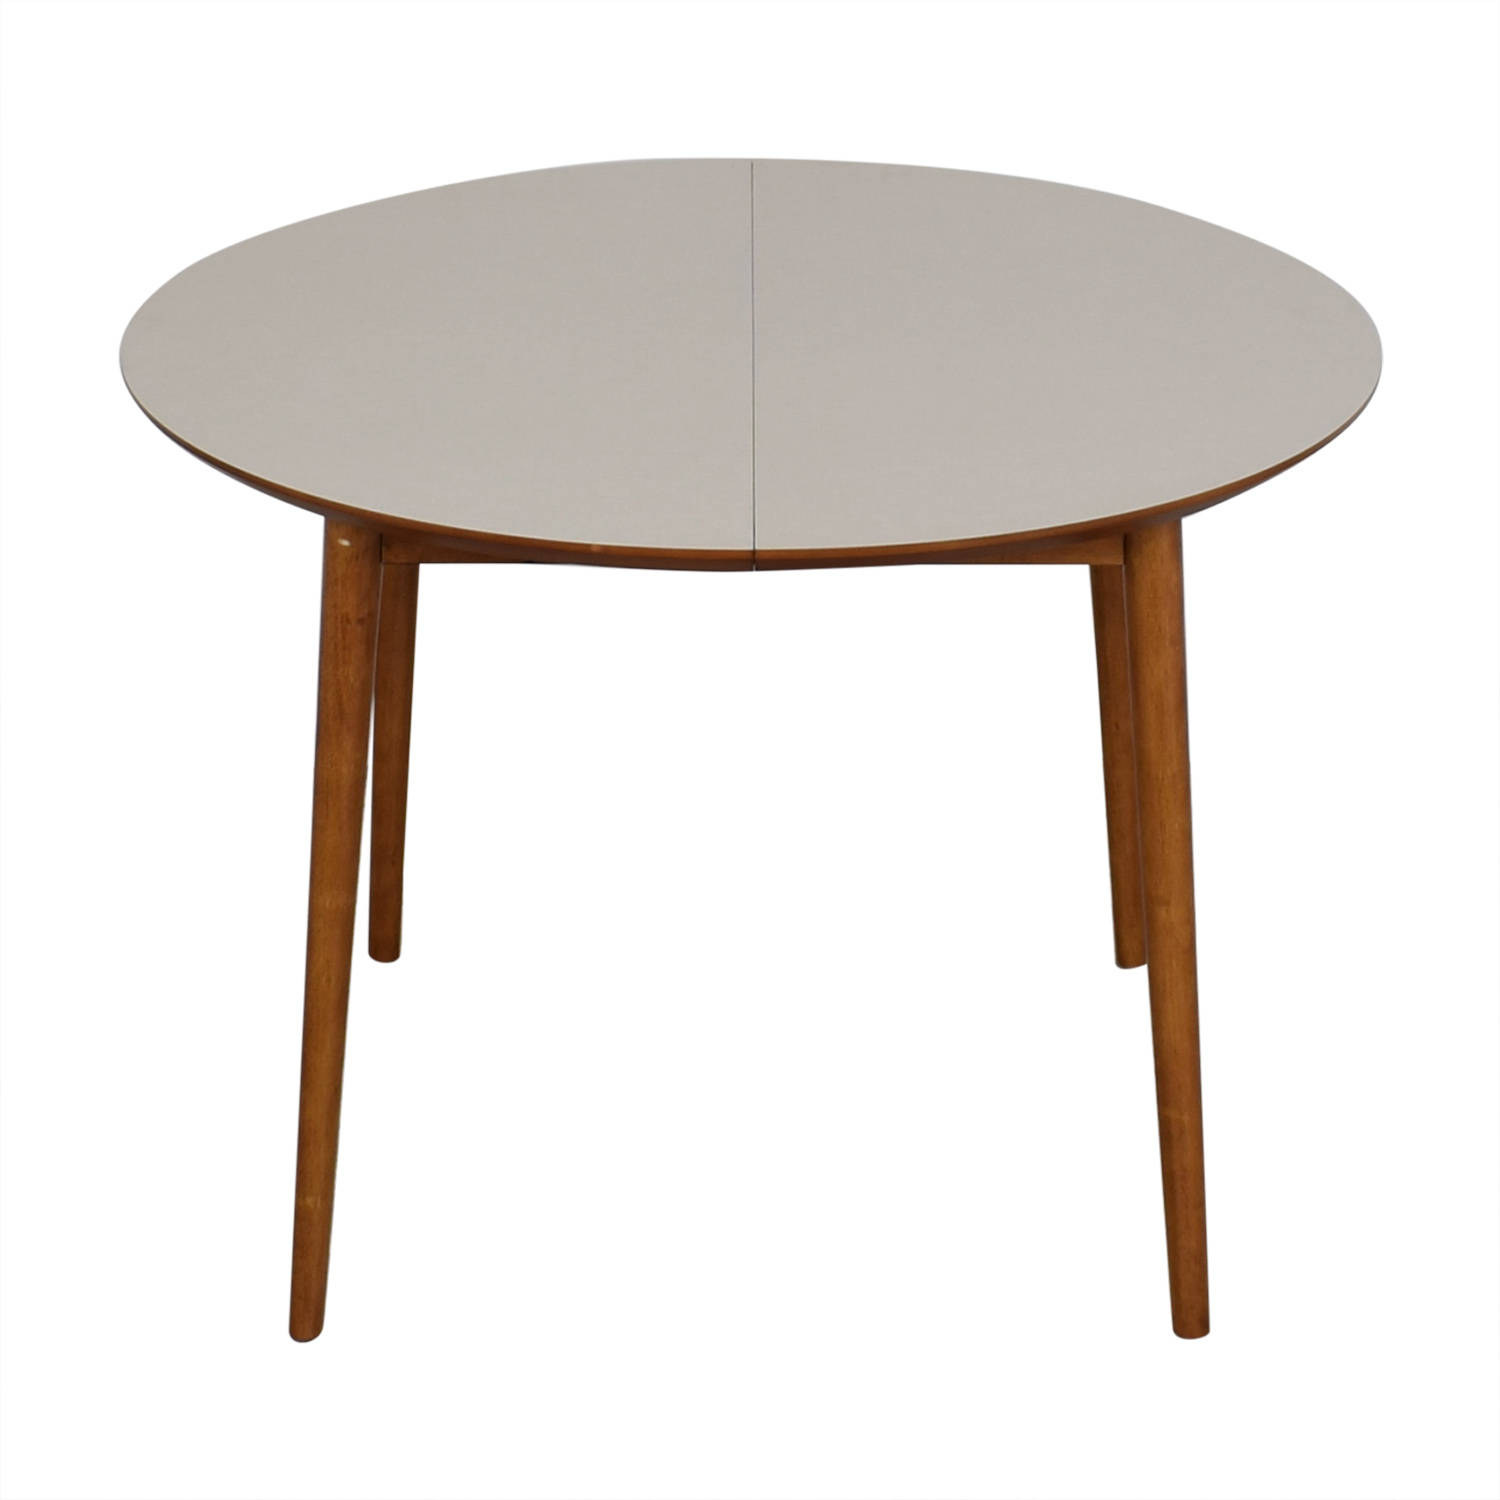 Top 5 West Elm Round Dining Table With Cut Out Legs—Xi With Regard To 2018 Rustic Mahogany Benchwright Pedestal Extending Dining Tables (View 19 of 25)